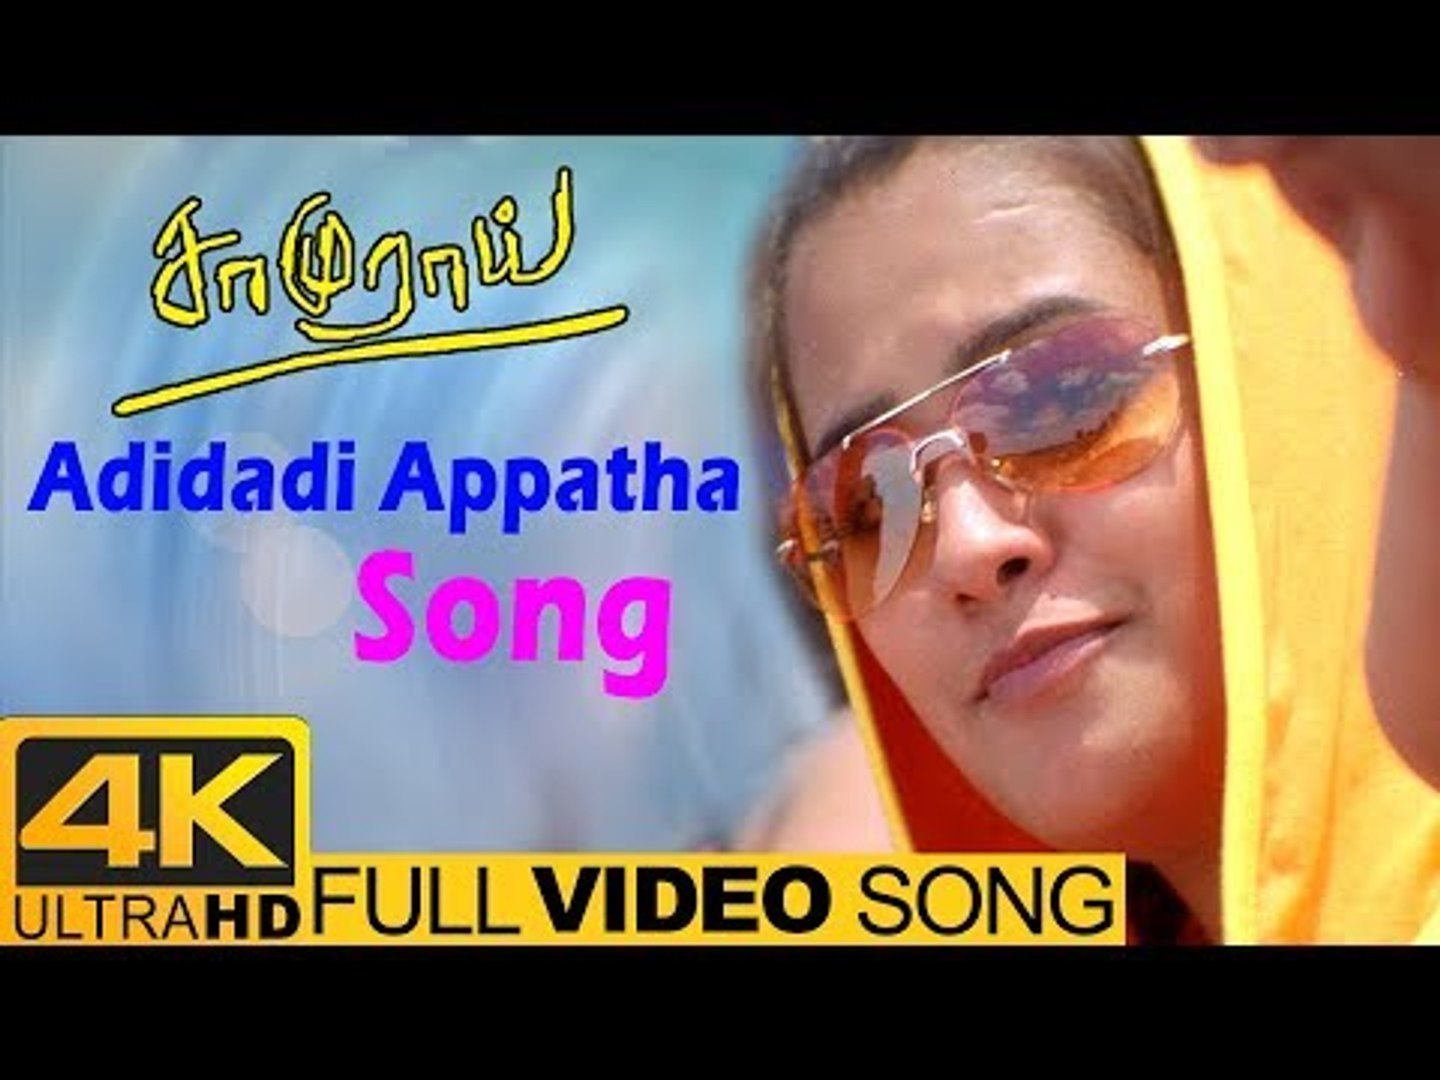 Tamil Hits 4K | Adidadi Appatha Video Song 4K | Samurai Tamil Songs | Vikram | Harris Jayaraj